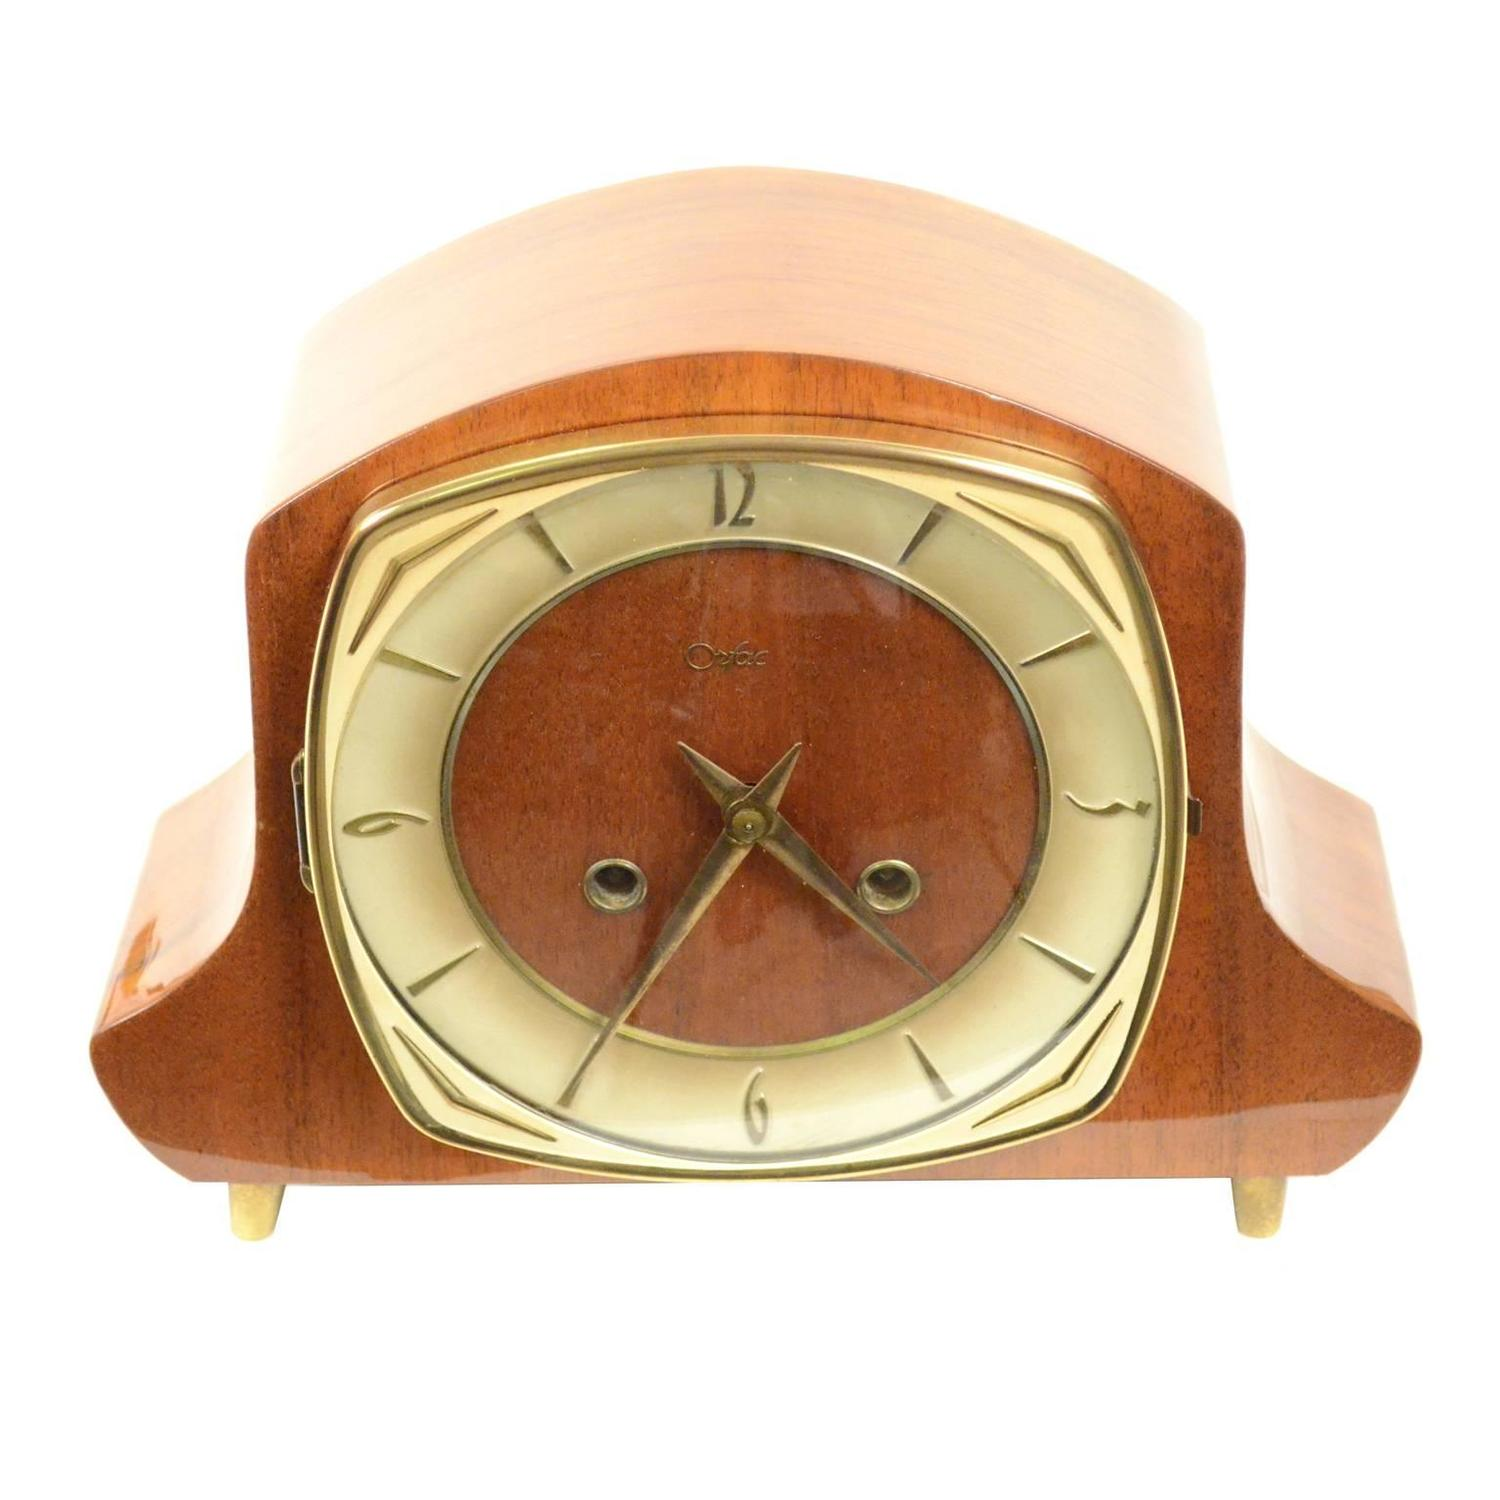 Wooden and brass table clock signed orfac at stdibs